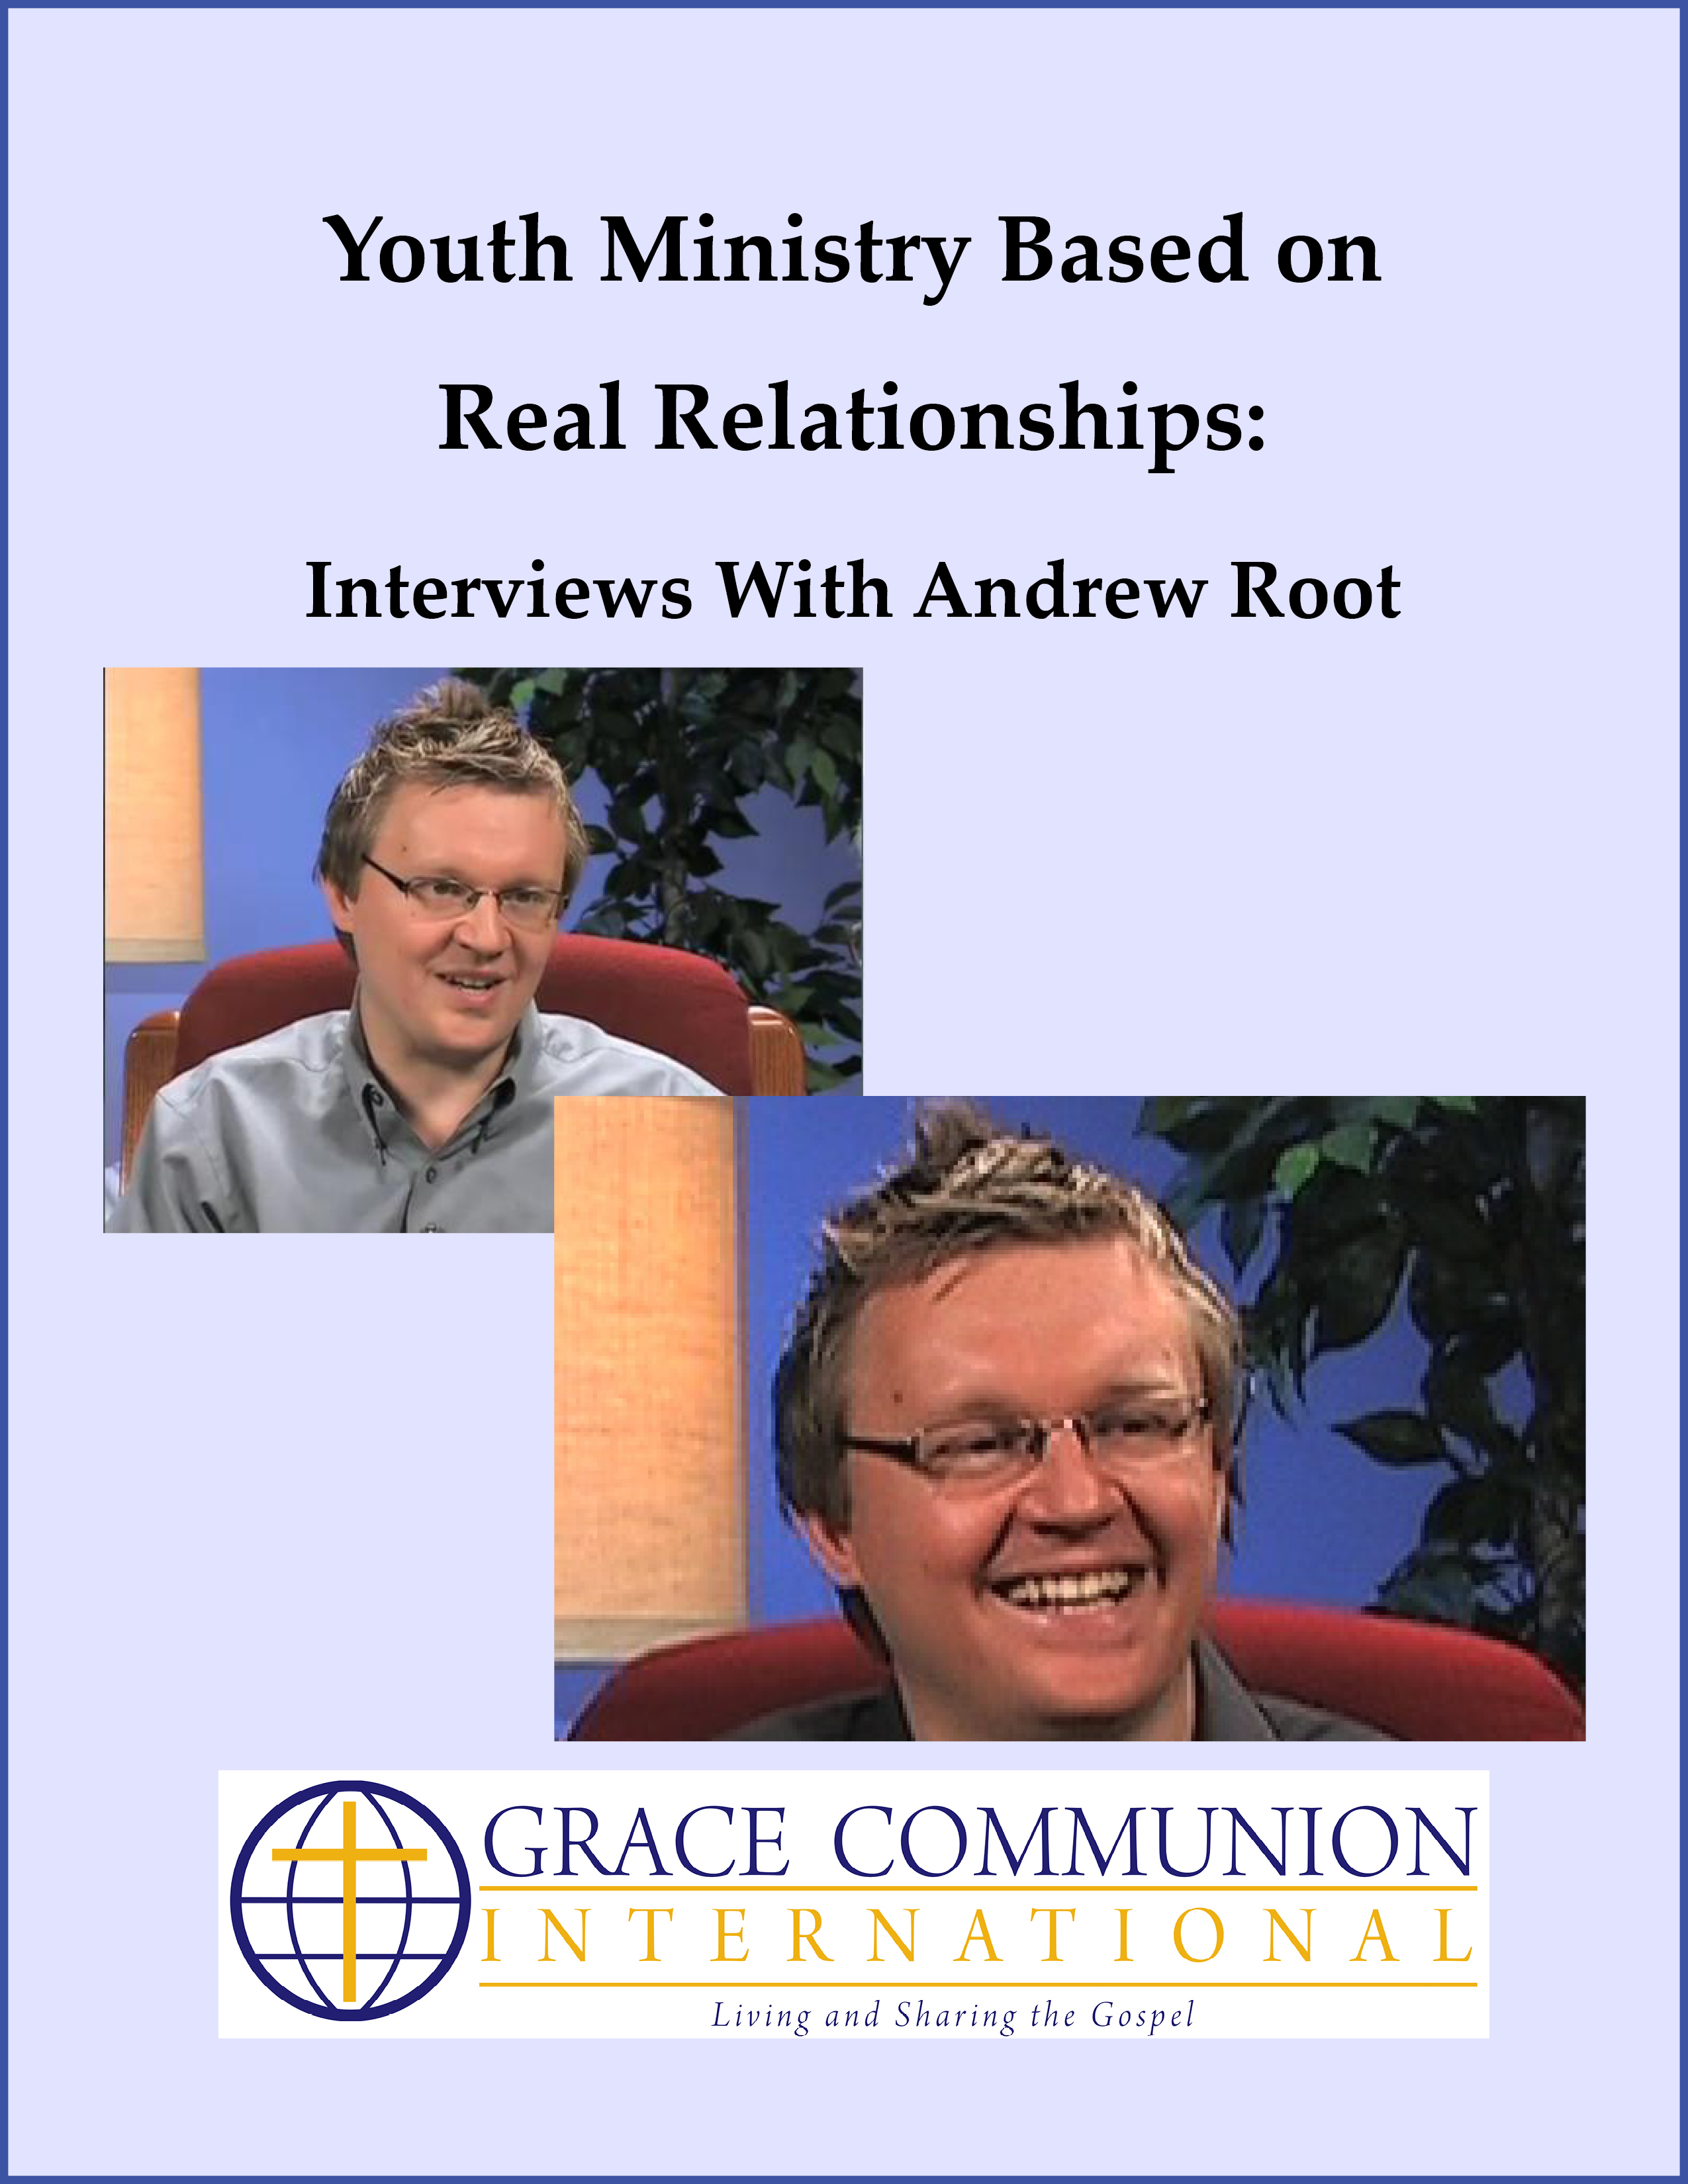 Youth Ministry Based on Real Relationships: Interviews With Andrew Root